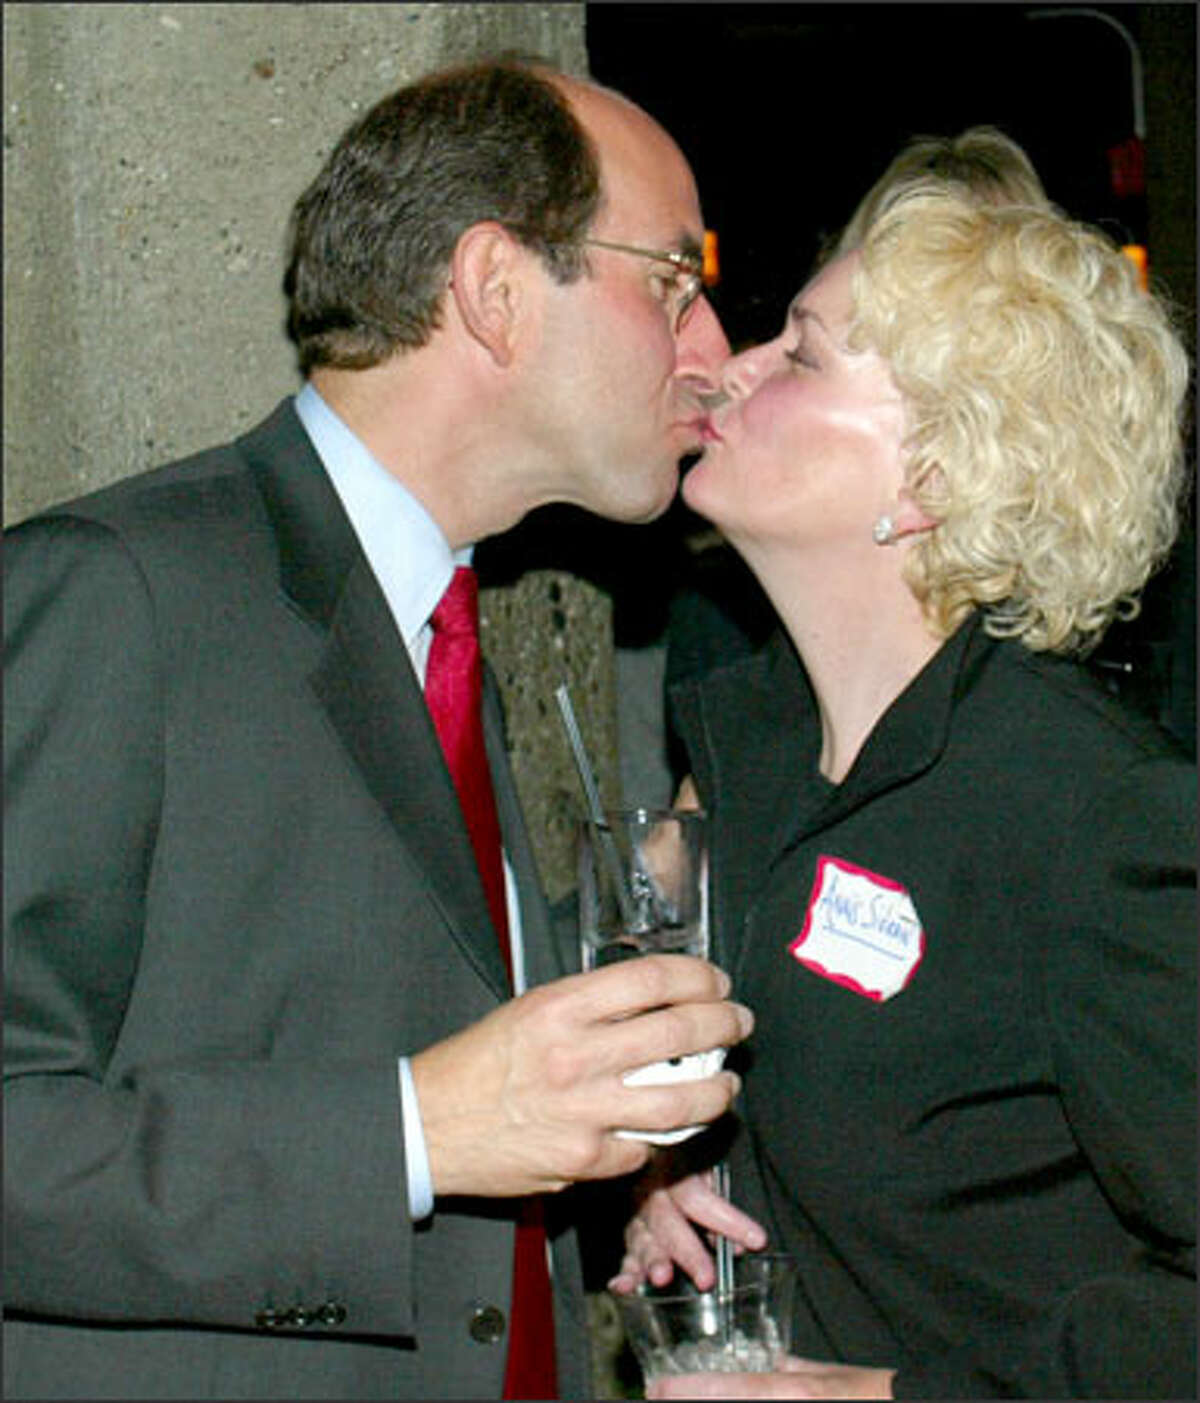 Mark Sidran kisses his wife, Anais Winant, at his campaign party at the Triple Door. Sidran remains hopeful that he'll come out ahead in the end.